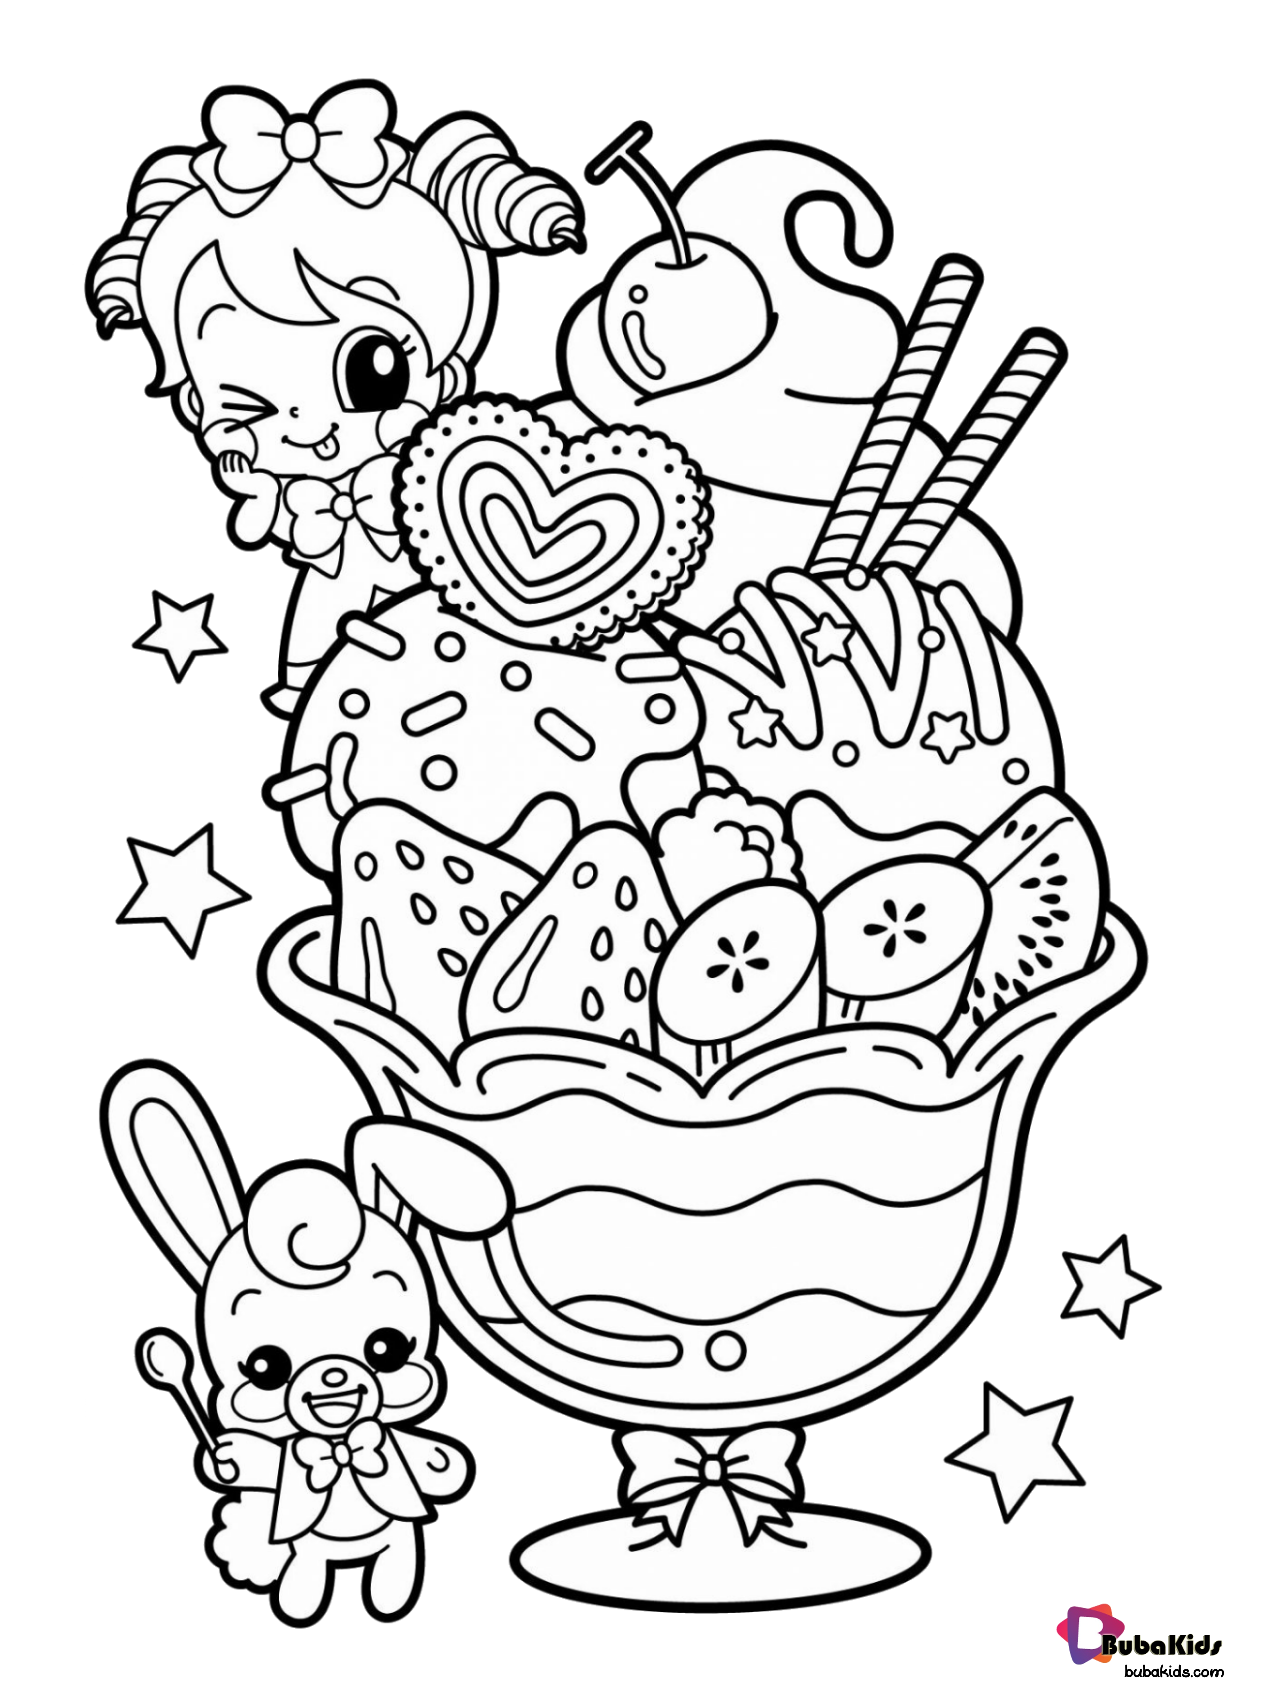 cartoon food coloring pages pizza coloring page printable pizza coloring page food cartoon pages coloring food